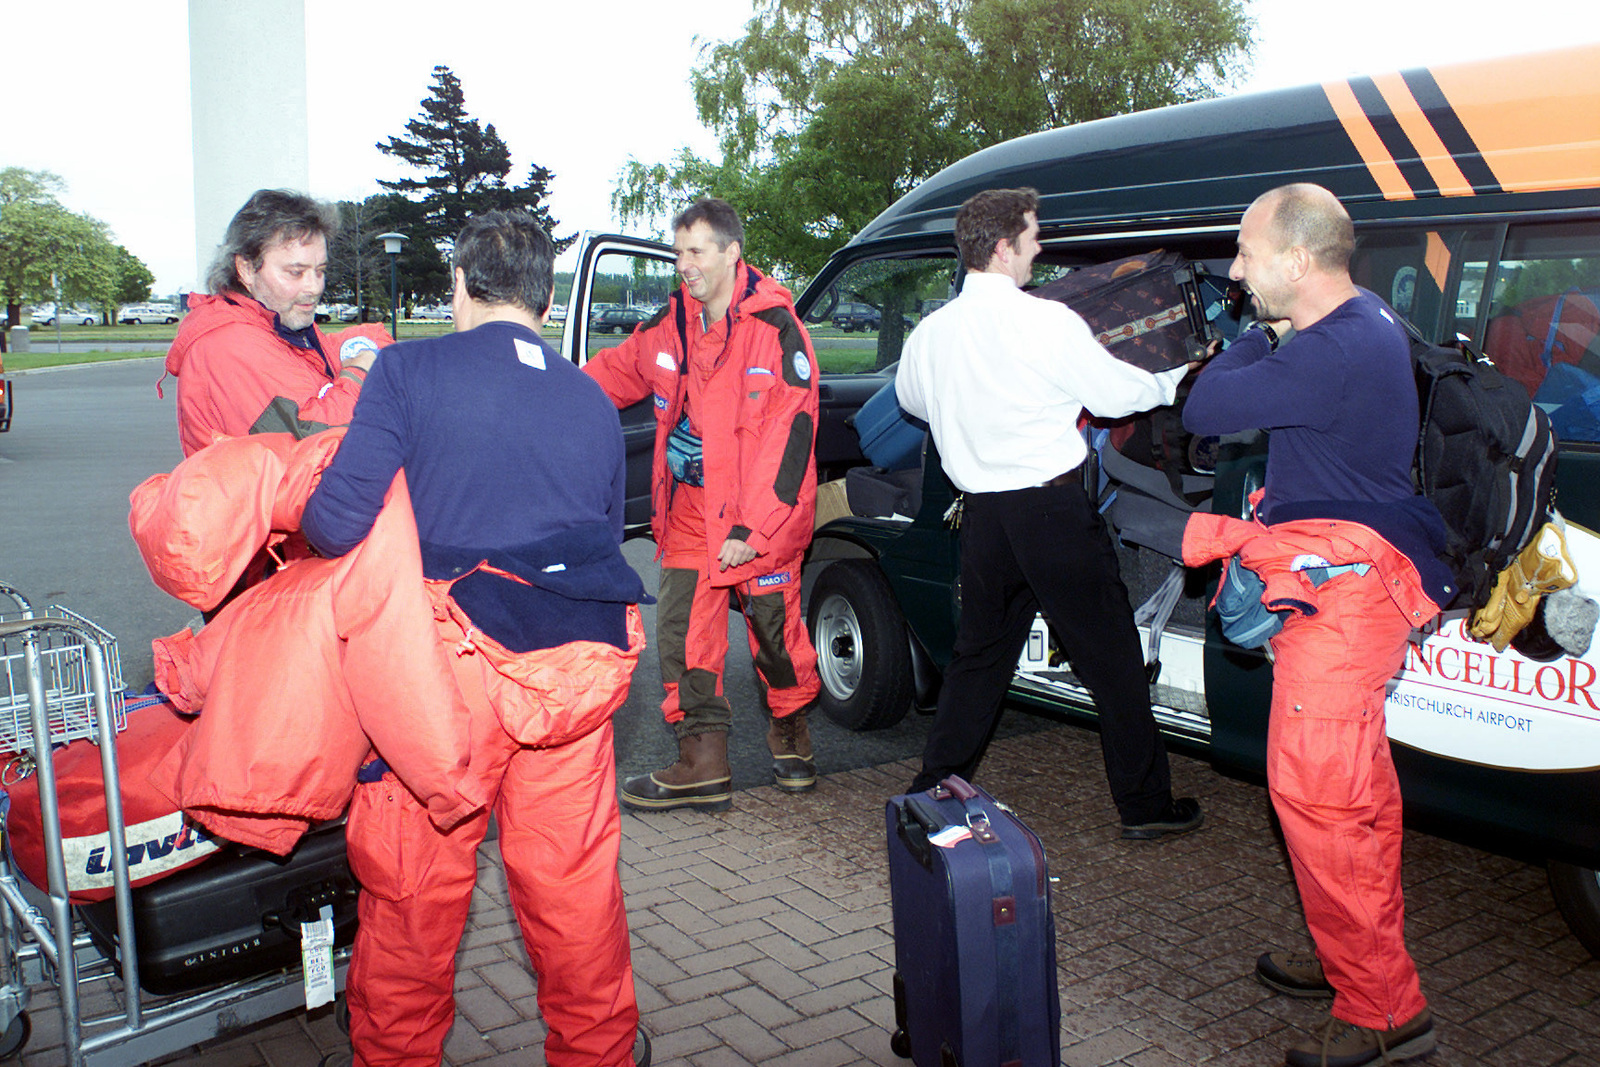 Members of the Italian National Antarctic Research Program, (PNRA), load their baggage into the hotels transport as they ready for departure from Christchurch, New Zealand, to the South Pole for a four month stay. They are participating in the United States Antarctic Program under the Authority for New Technologies, Energy and Environment, (ENEA), and will board a C-141 Starlifter Aircraft out of Christchurch to the ice of Antarctica during Operation DEEP FREEZE 2001